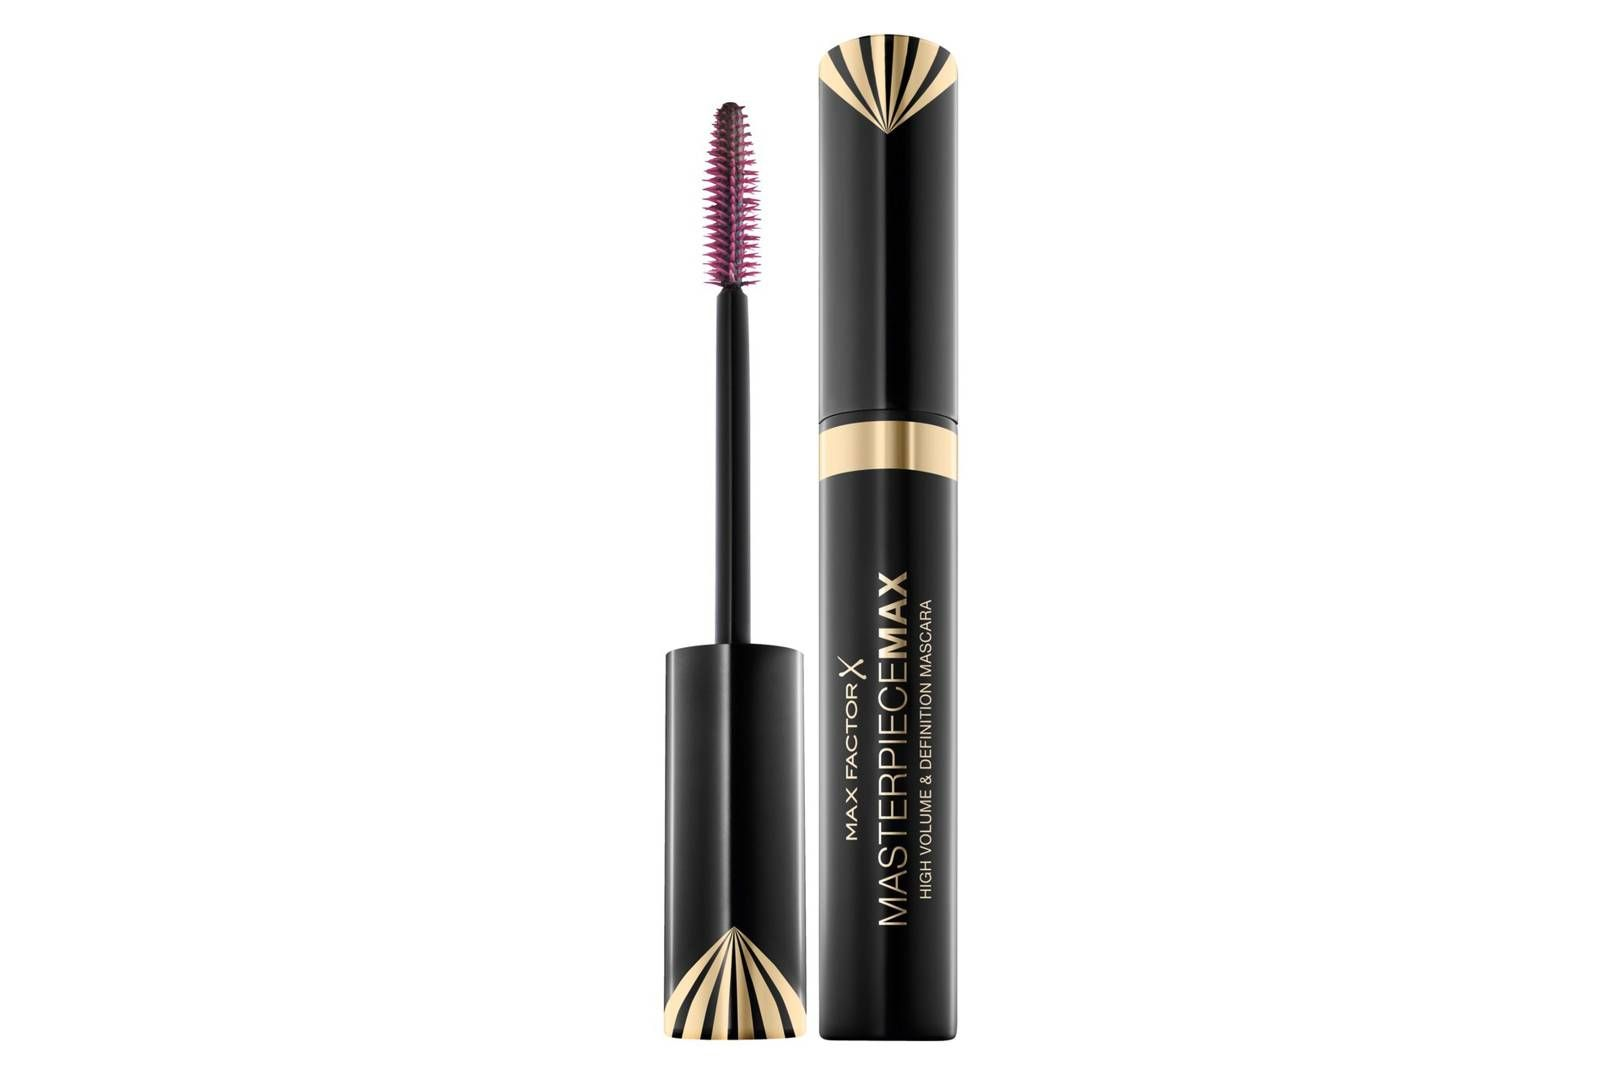 59f7e3ead13 One of these £5.99 mascaras sells every two seconds... and it's been ...